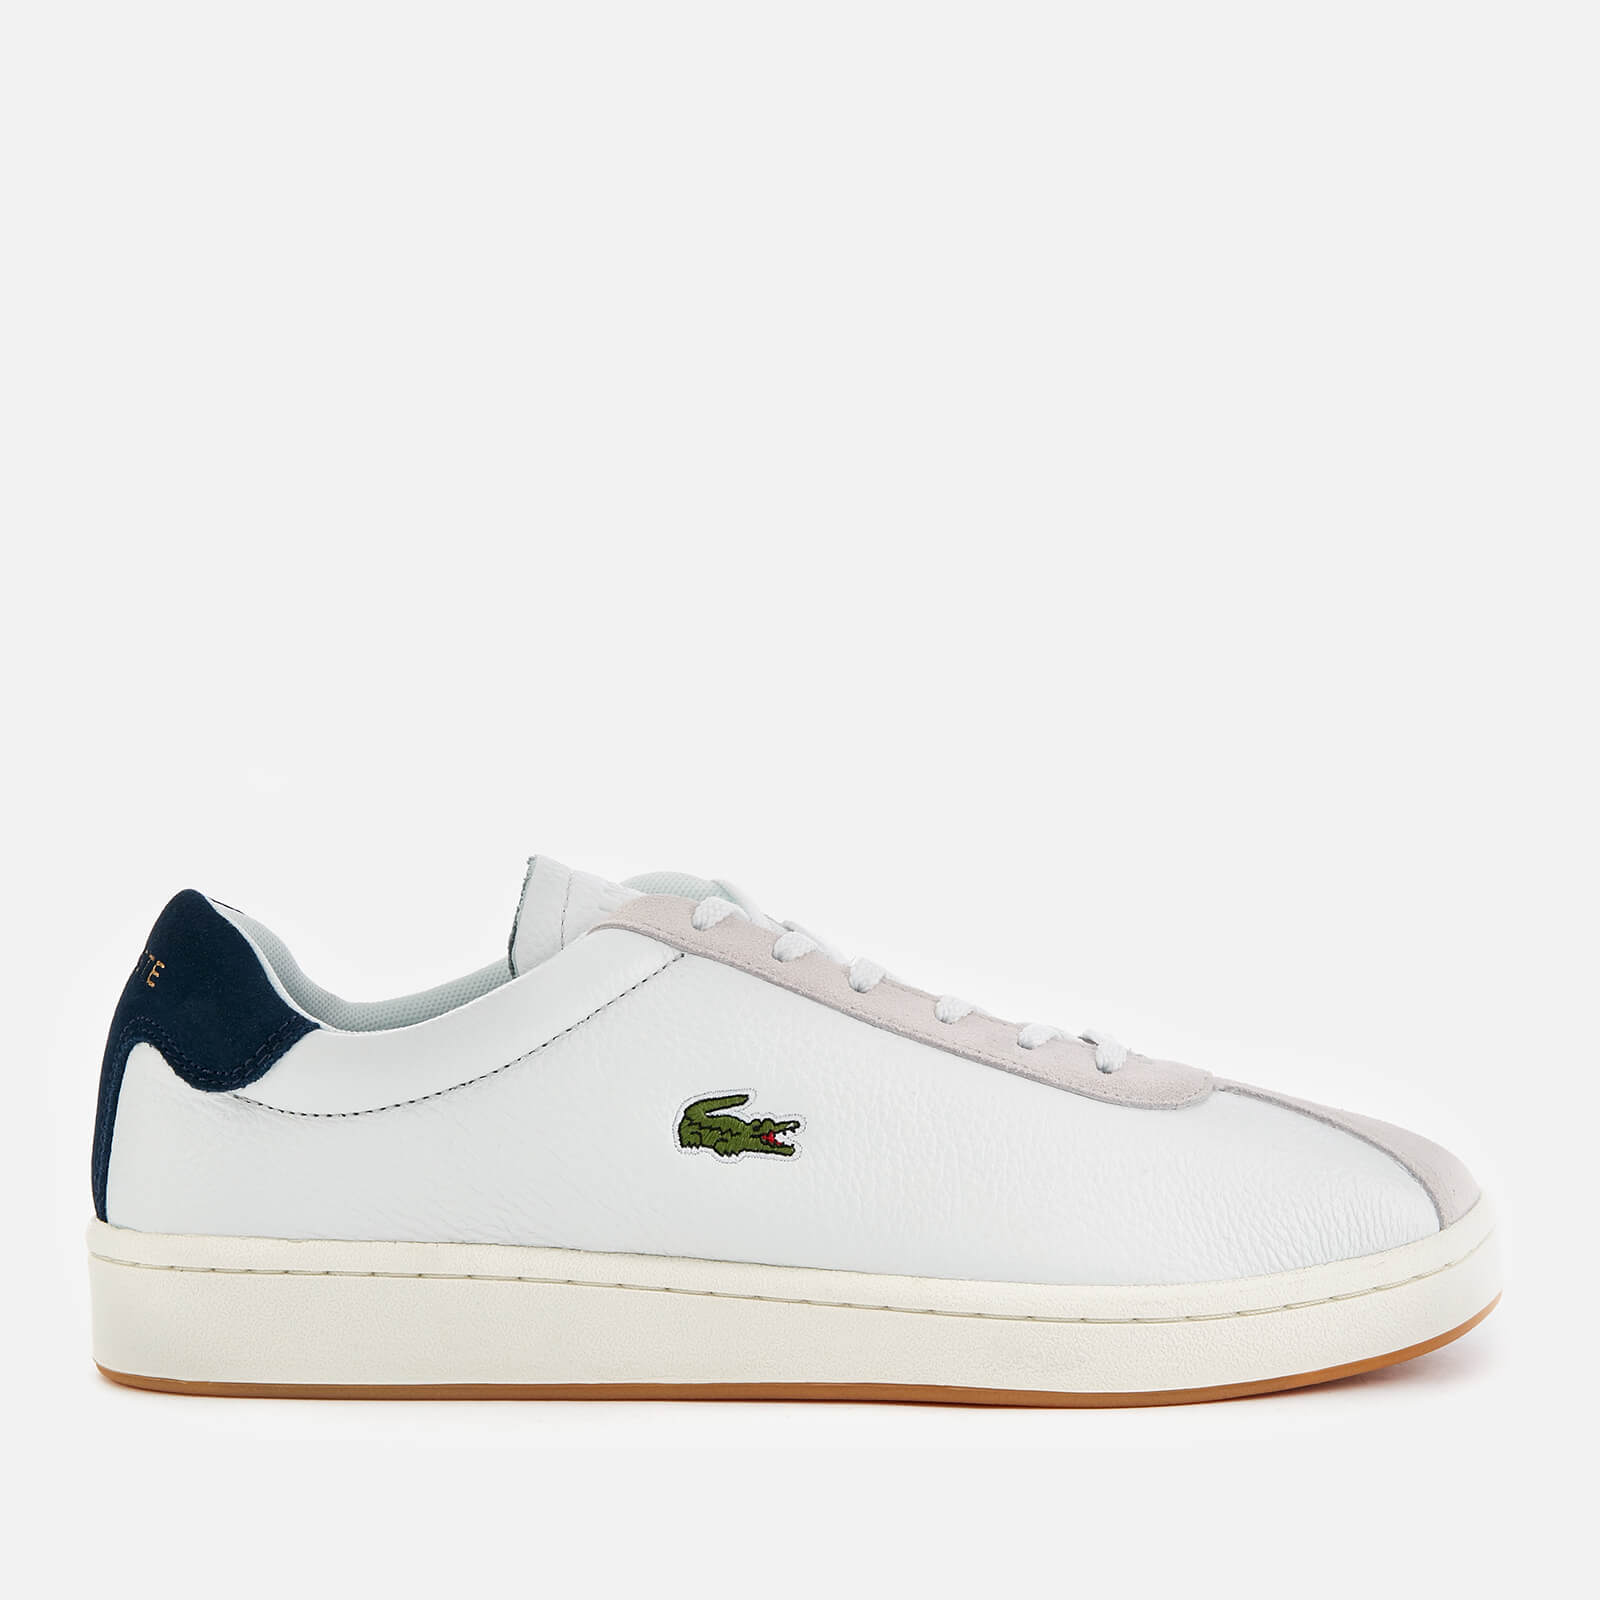 f0341de4018fa Lacoste Men's Masters 119 3 Leather/Suede Trainers - Off White/Navy Mens  Footwear | TheHut.com